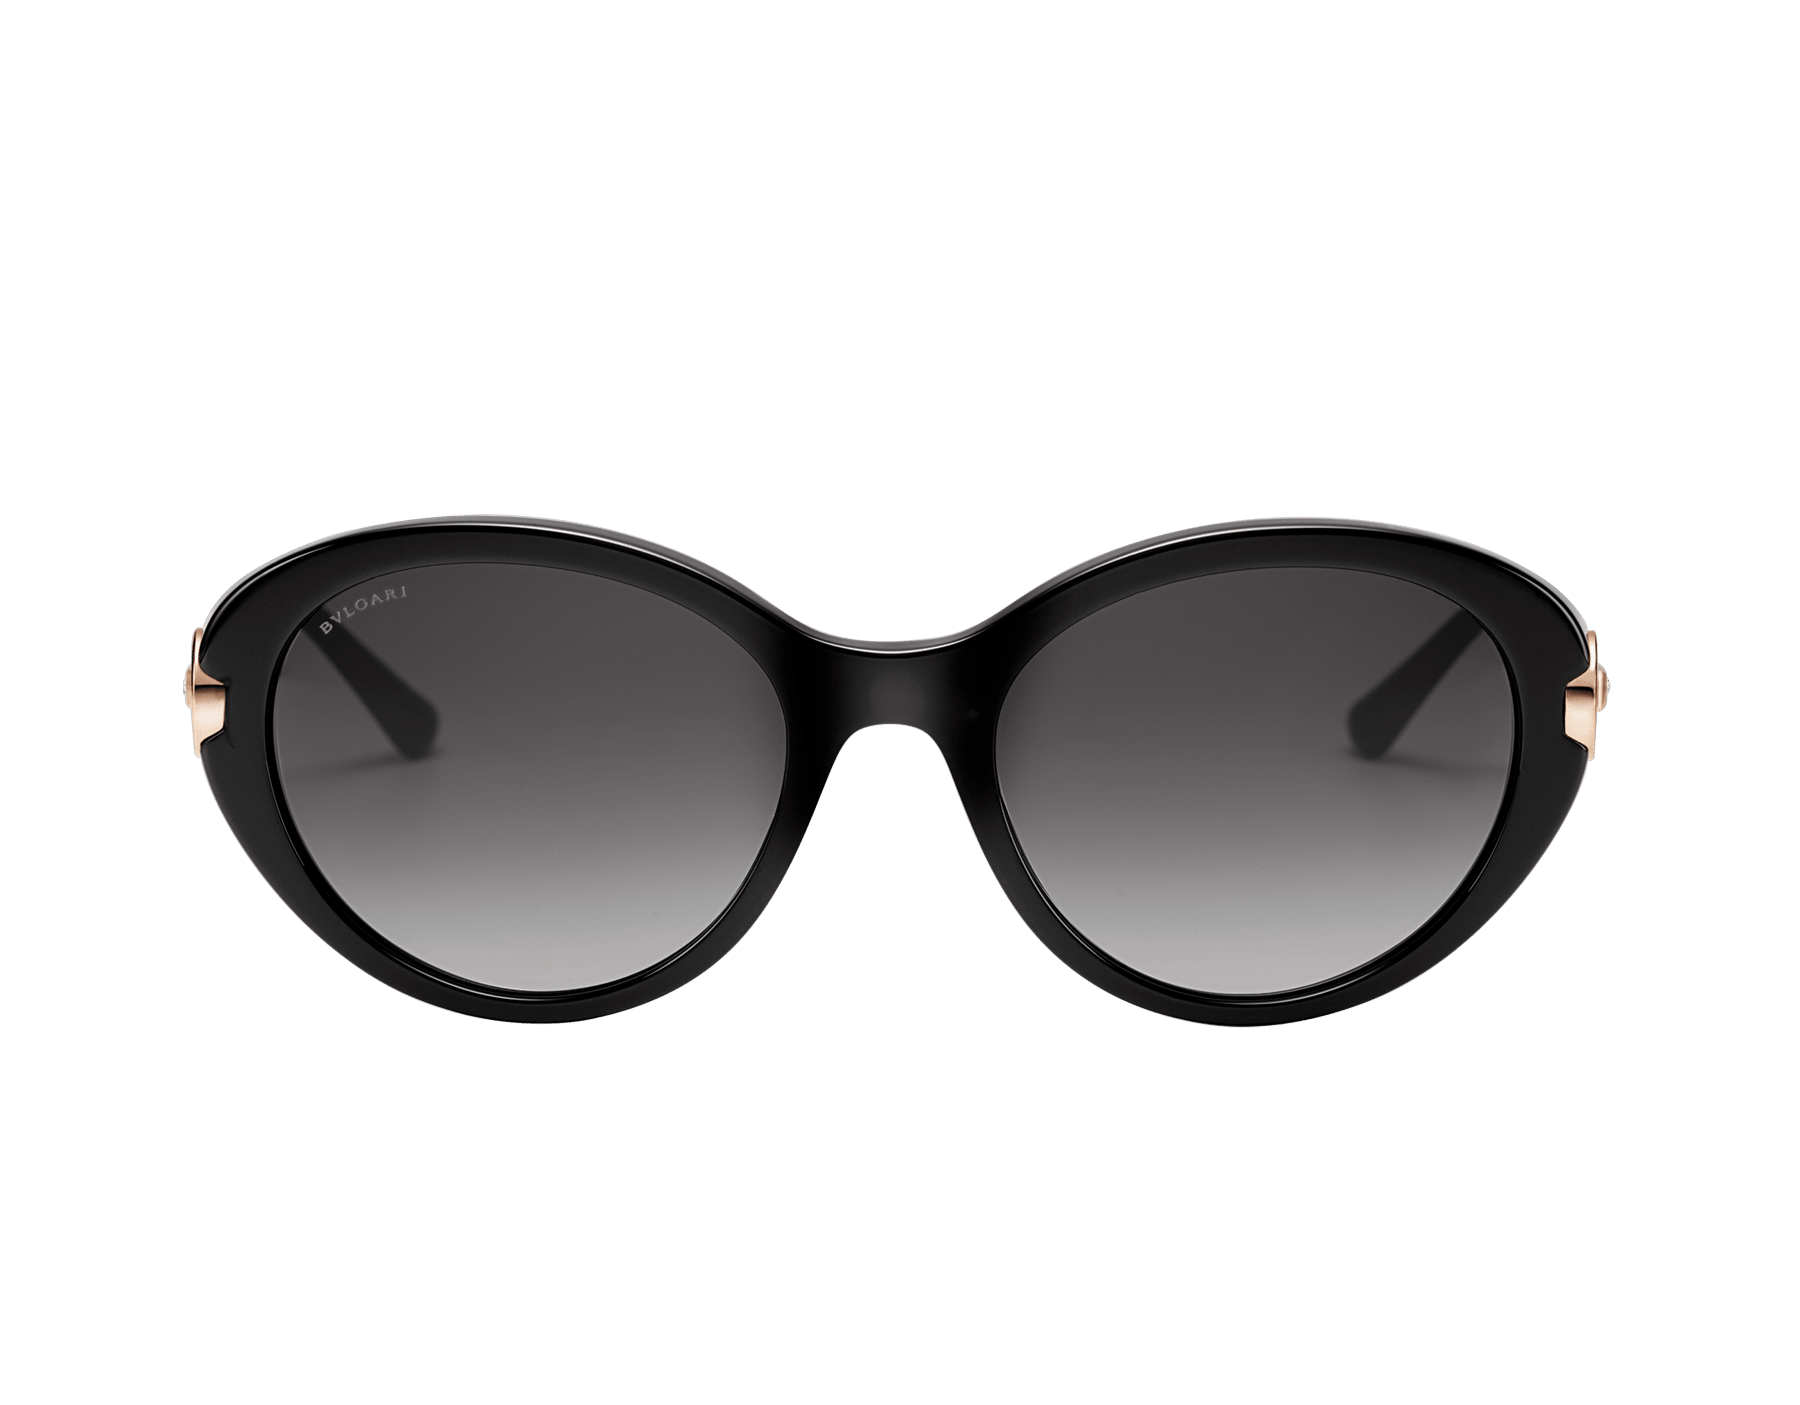 BVLGARI BVLGARI oval acetate sunglasses with metal décor and crystals. 903797 image 2